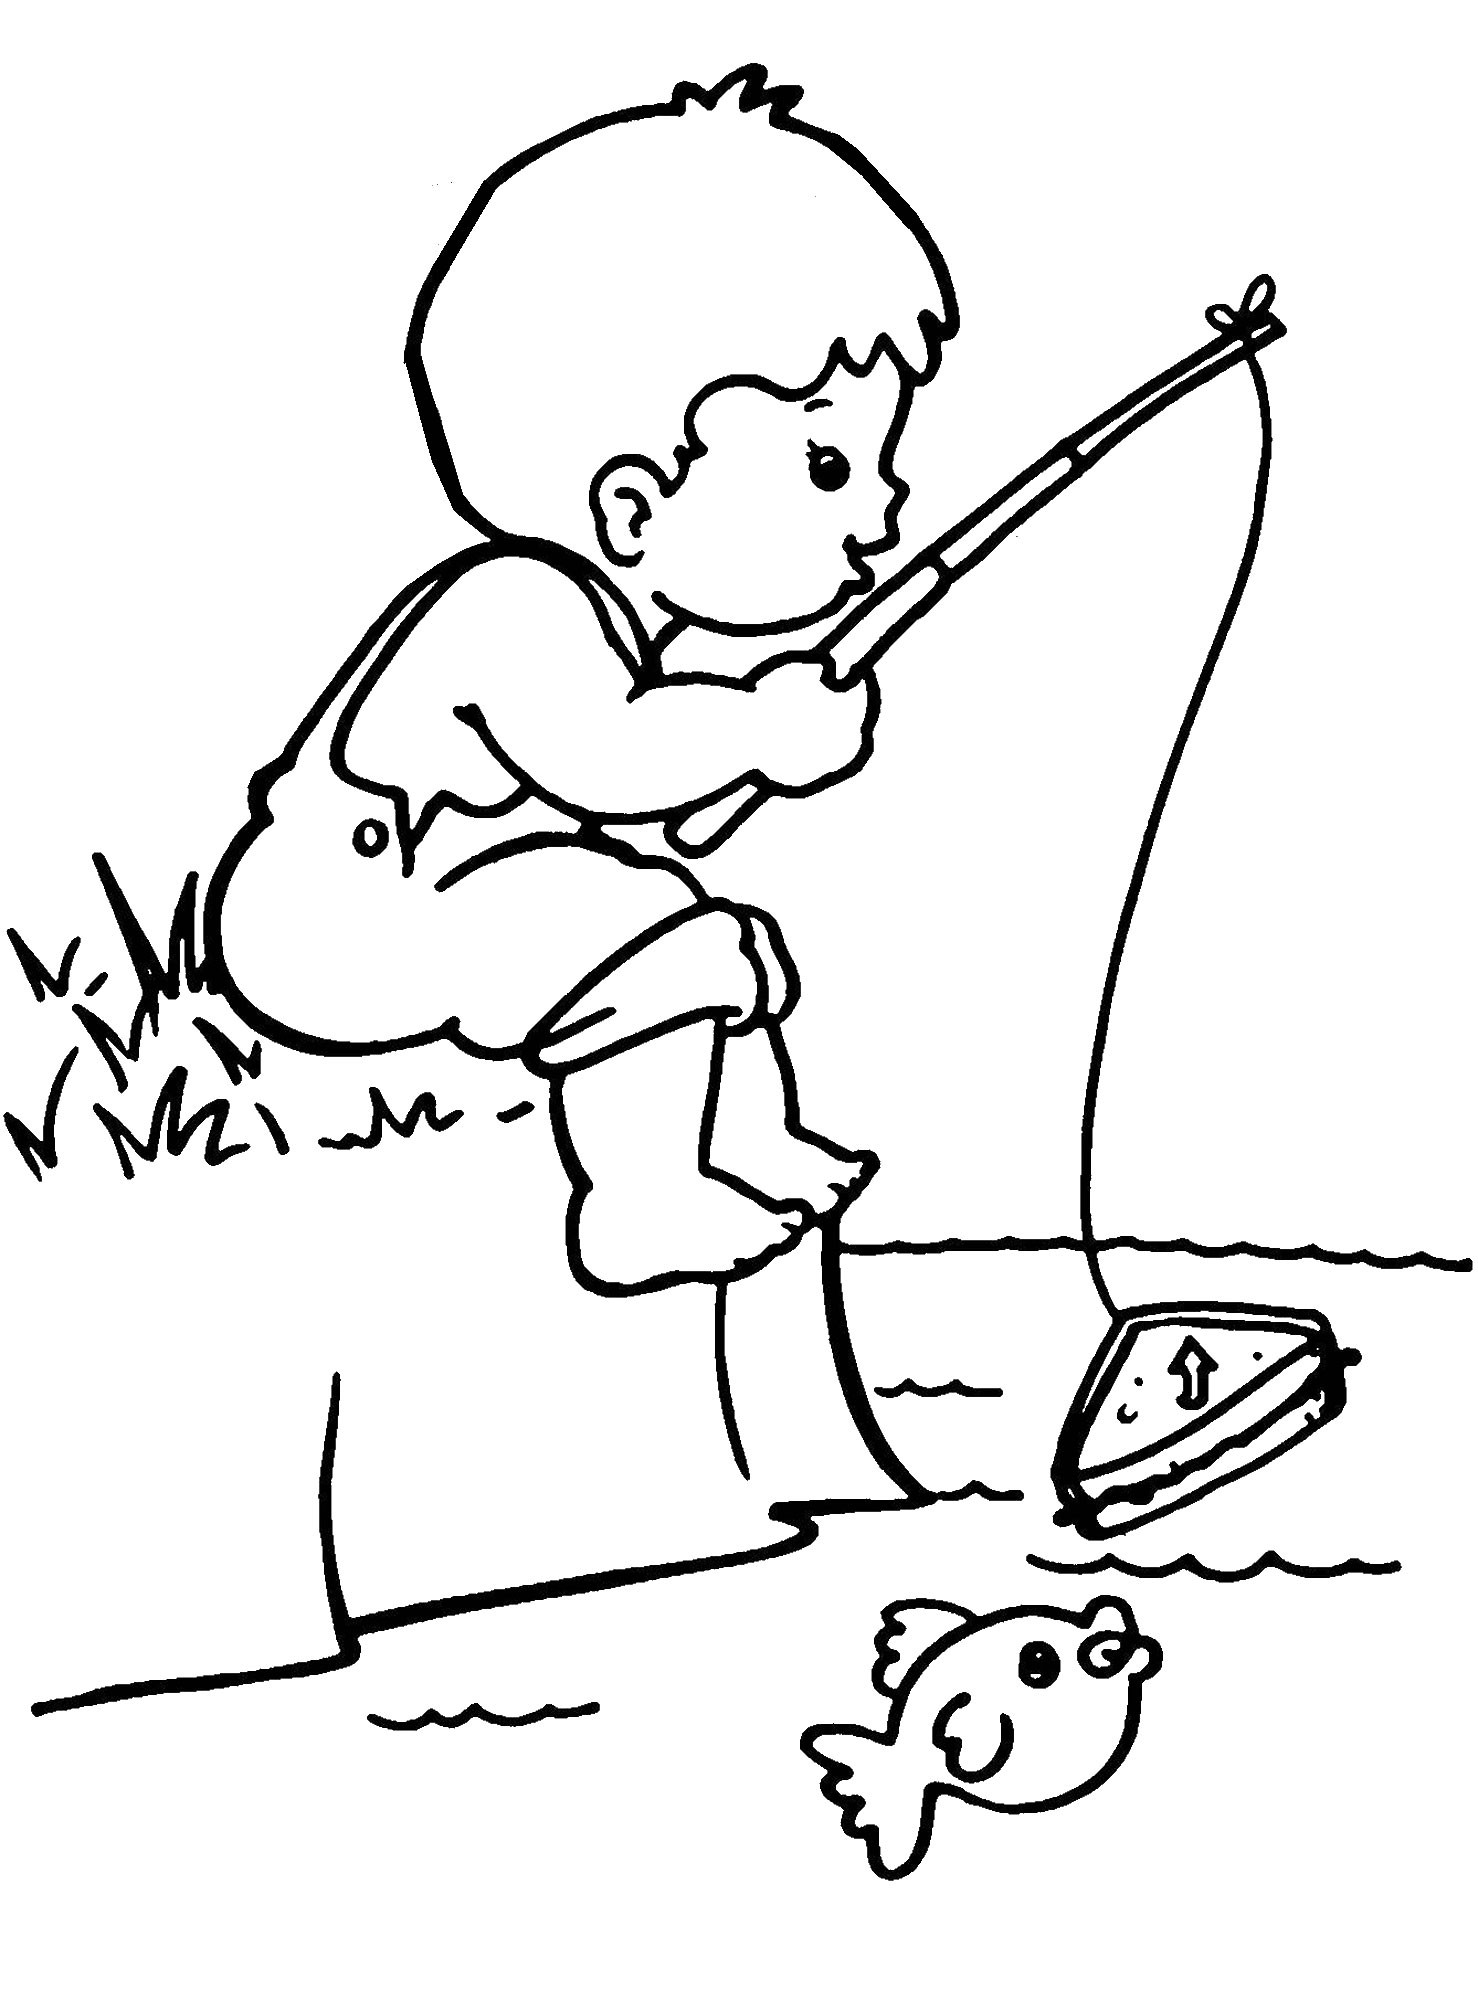 Coloring Pages For Girls And Boys To Print  Kids Paradise Club Program Sports & Crafts